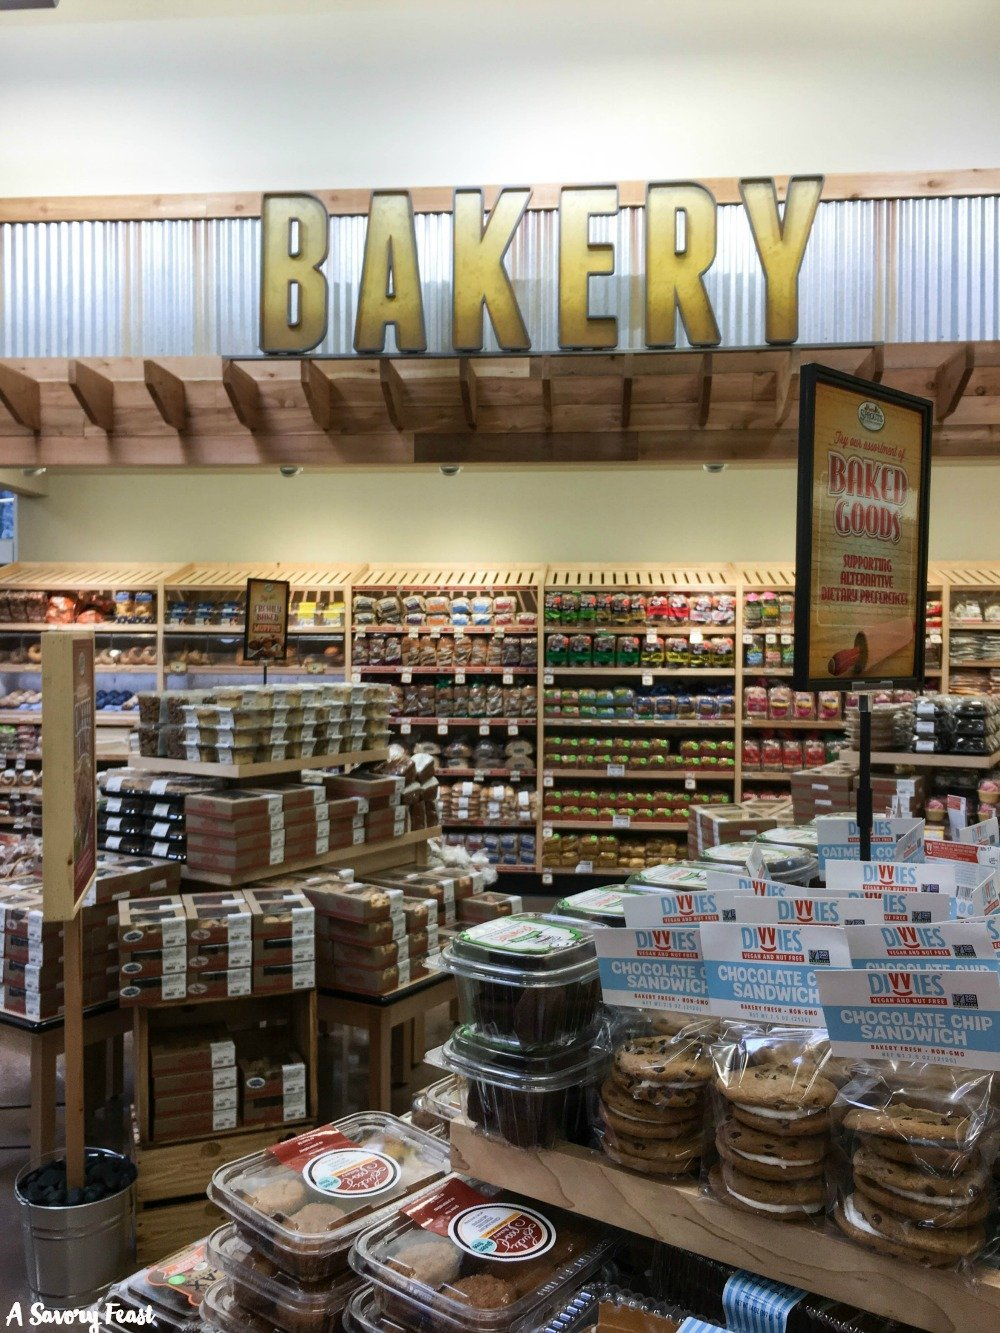 The bakery at Sprouts Farmers Market features lots of delicious treats and healthy breads.